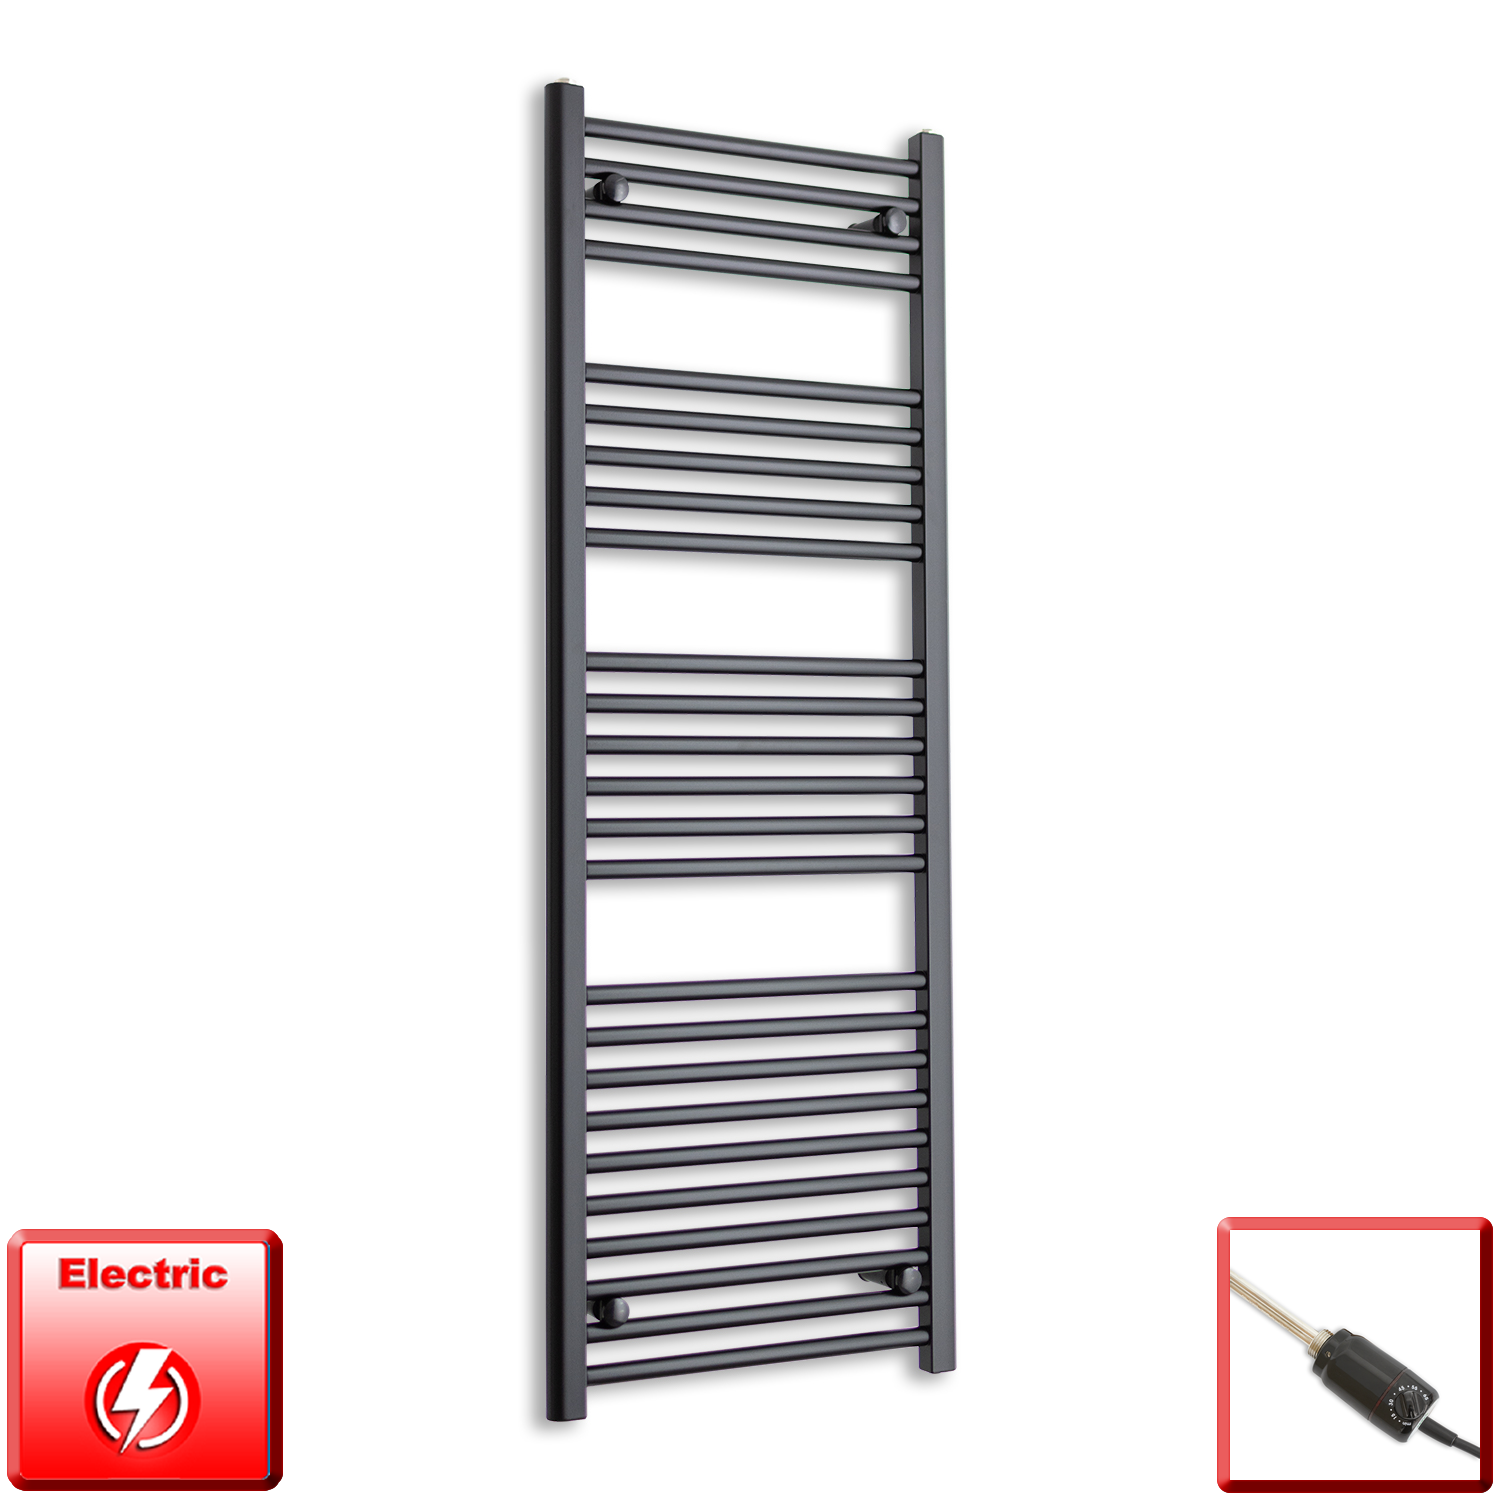 450mm Wide 1400mm High Flat Black Pre-Filled Electric Heated Towel Rail Radiator HTR,GT Thermostatic